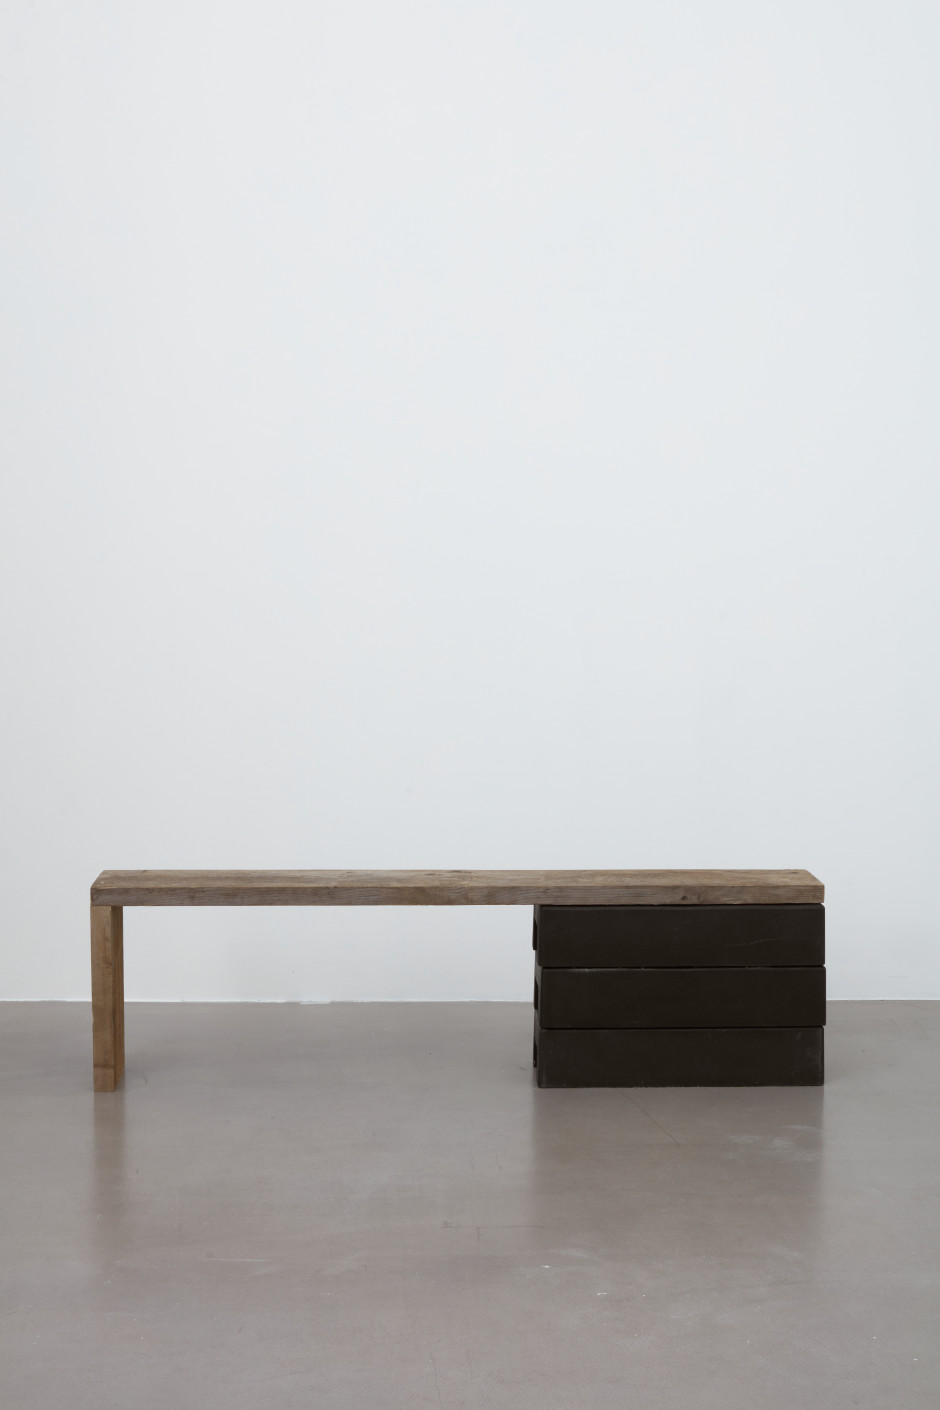 Untitled (bench) , 2020  rubber, wood  48.5 x 171 x 24.5 cm / 19 ⅛ x 67 ⅜ x 9 ⅝ in